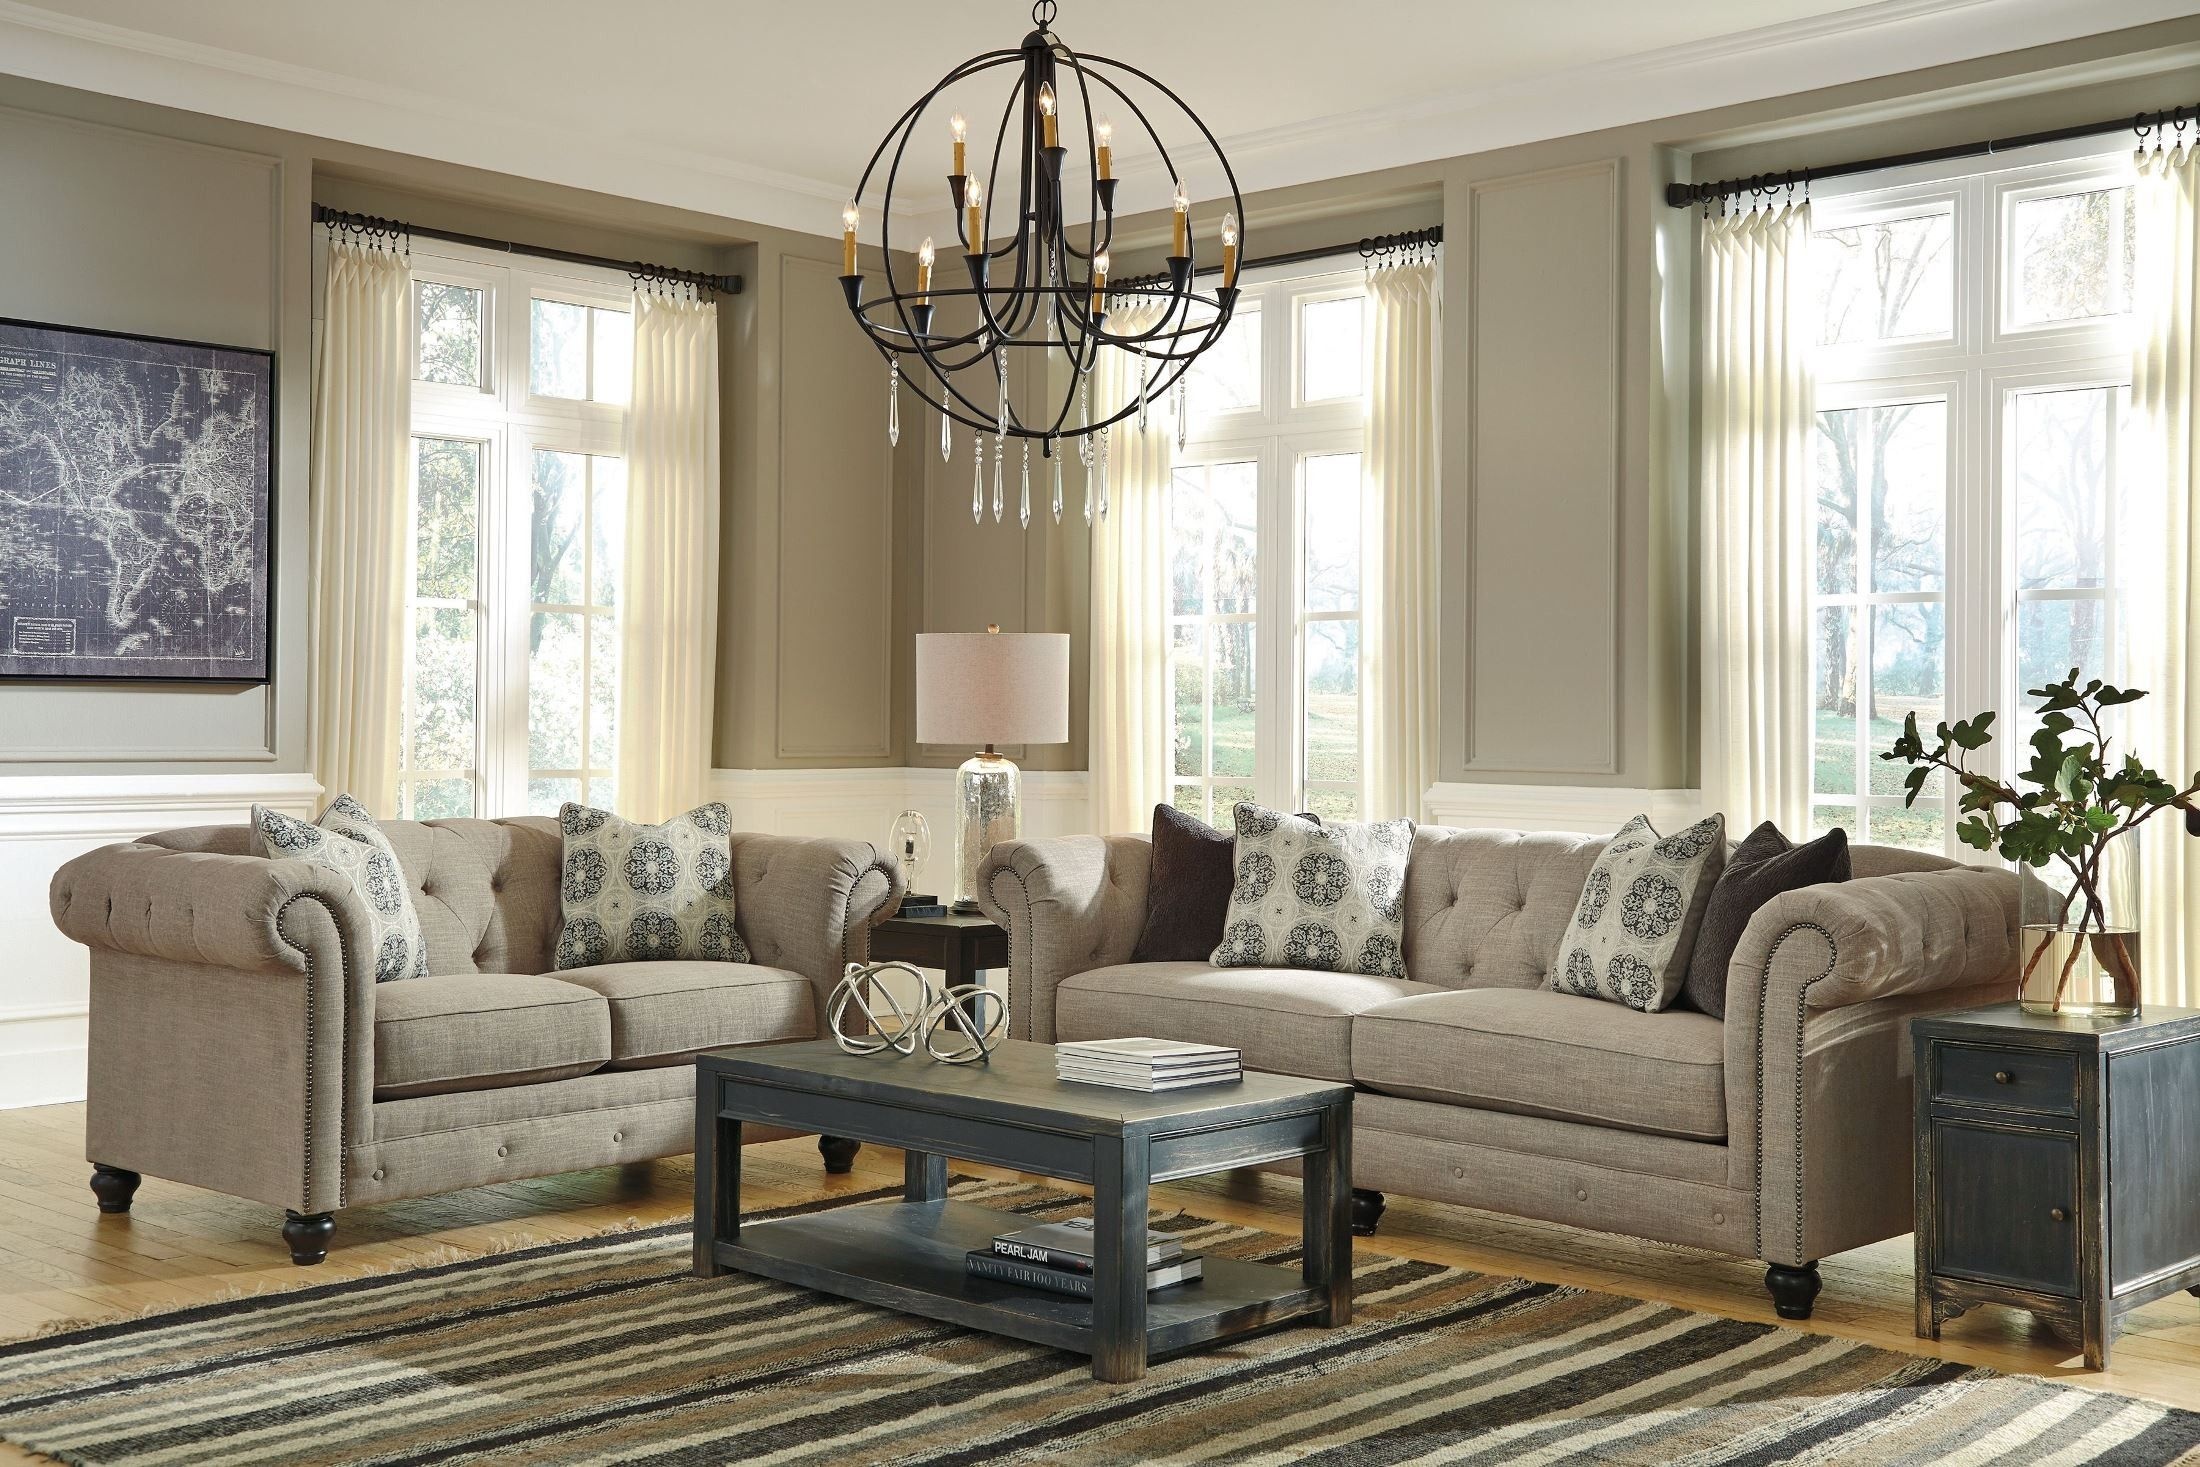 Living Room Sofa Azlyn Loveseat By Ashley Furniture At Kensington This Is The Perfect Couch For A Small